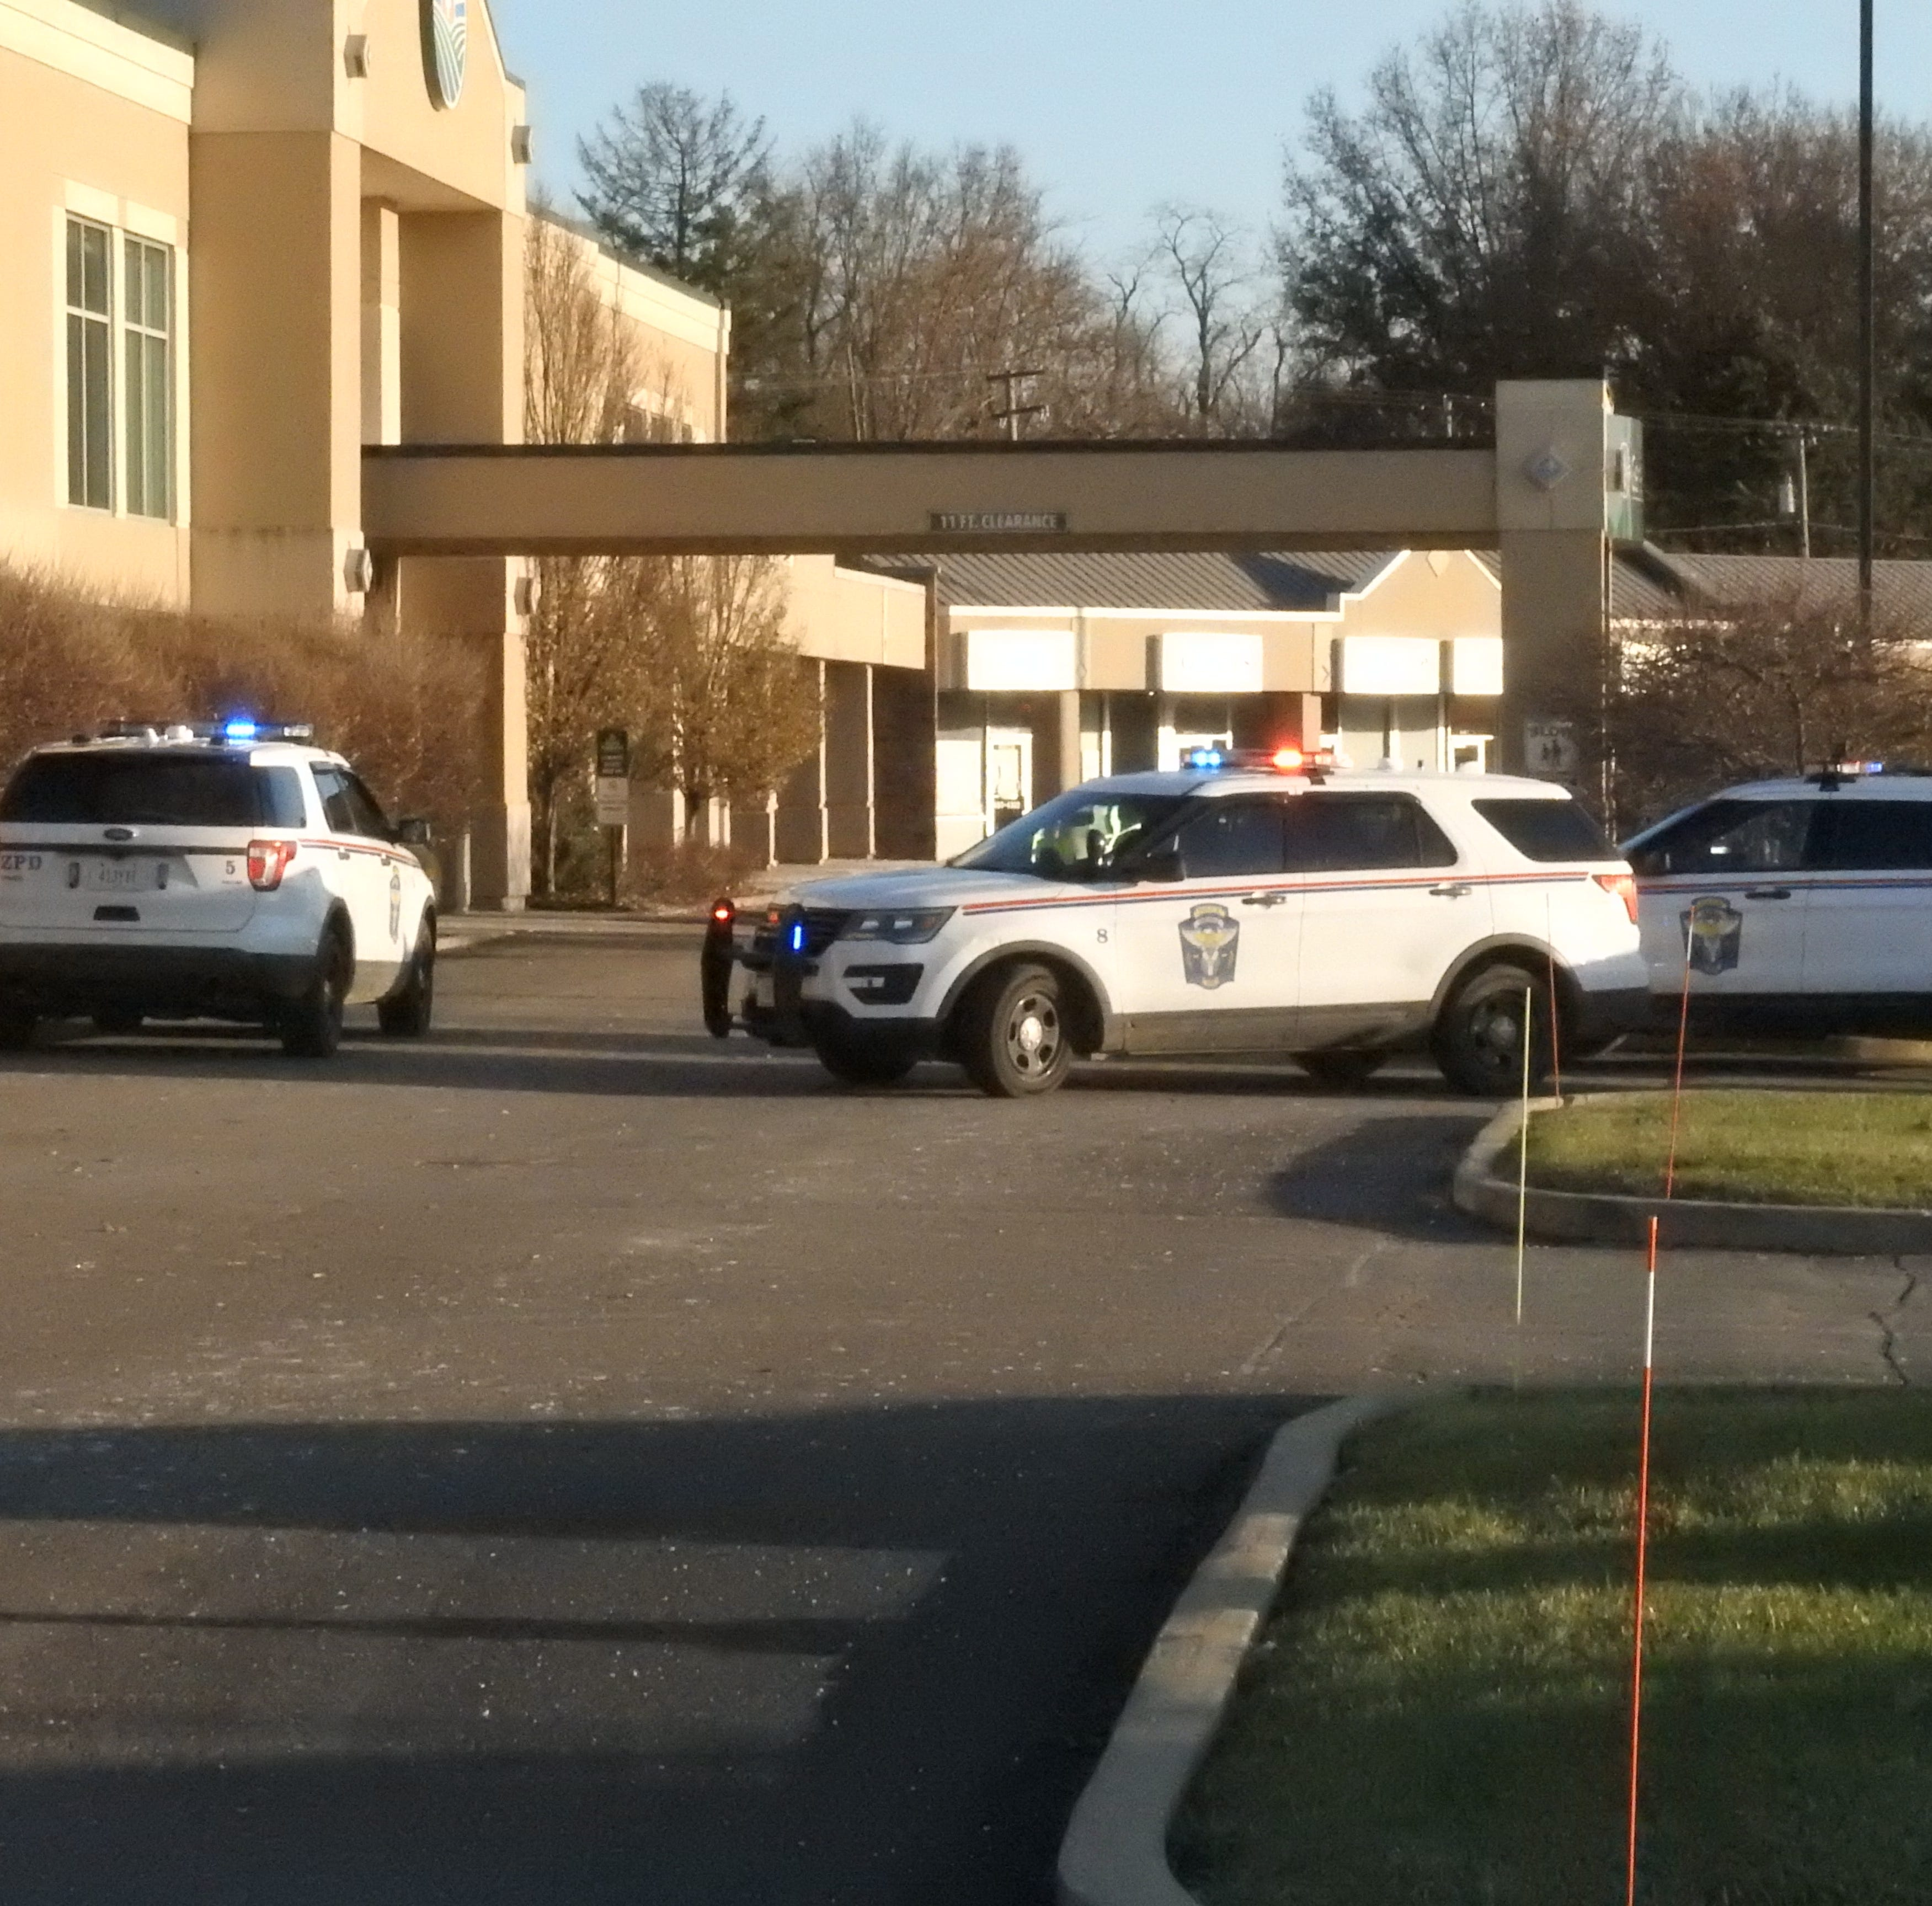 Authorities search for man who entered healthplex with gun